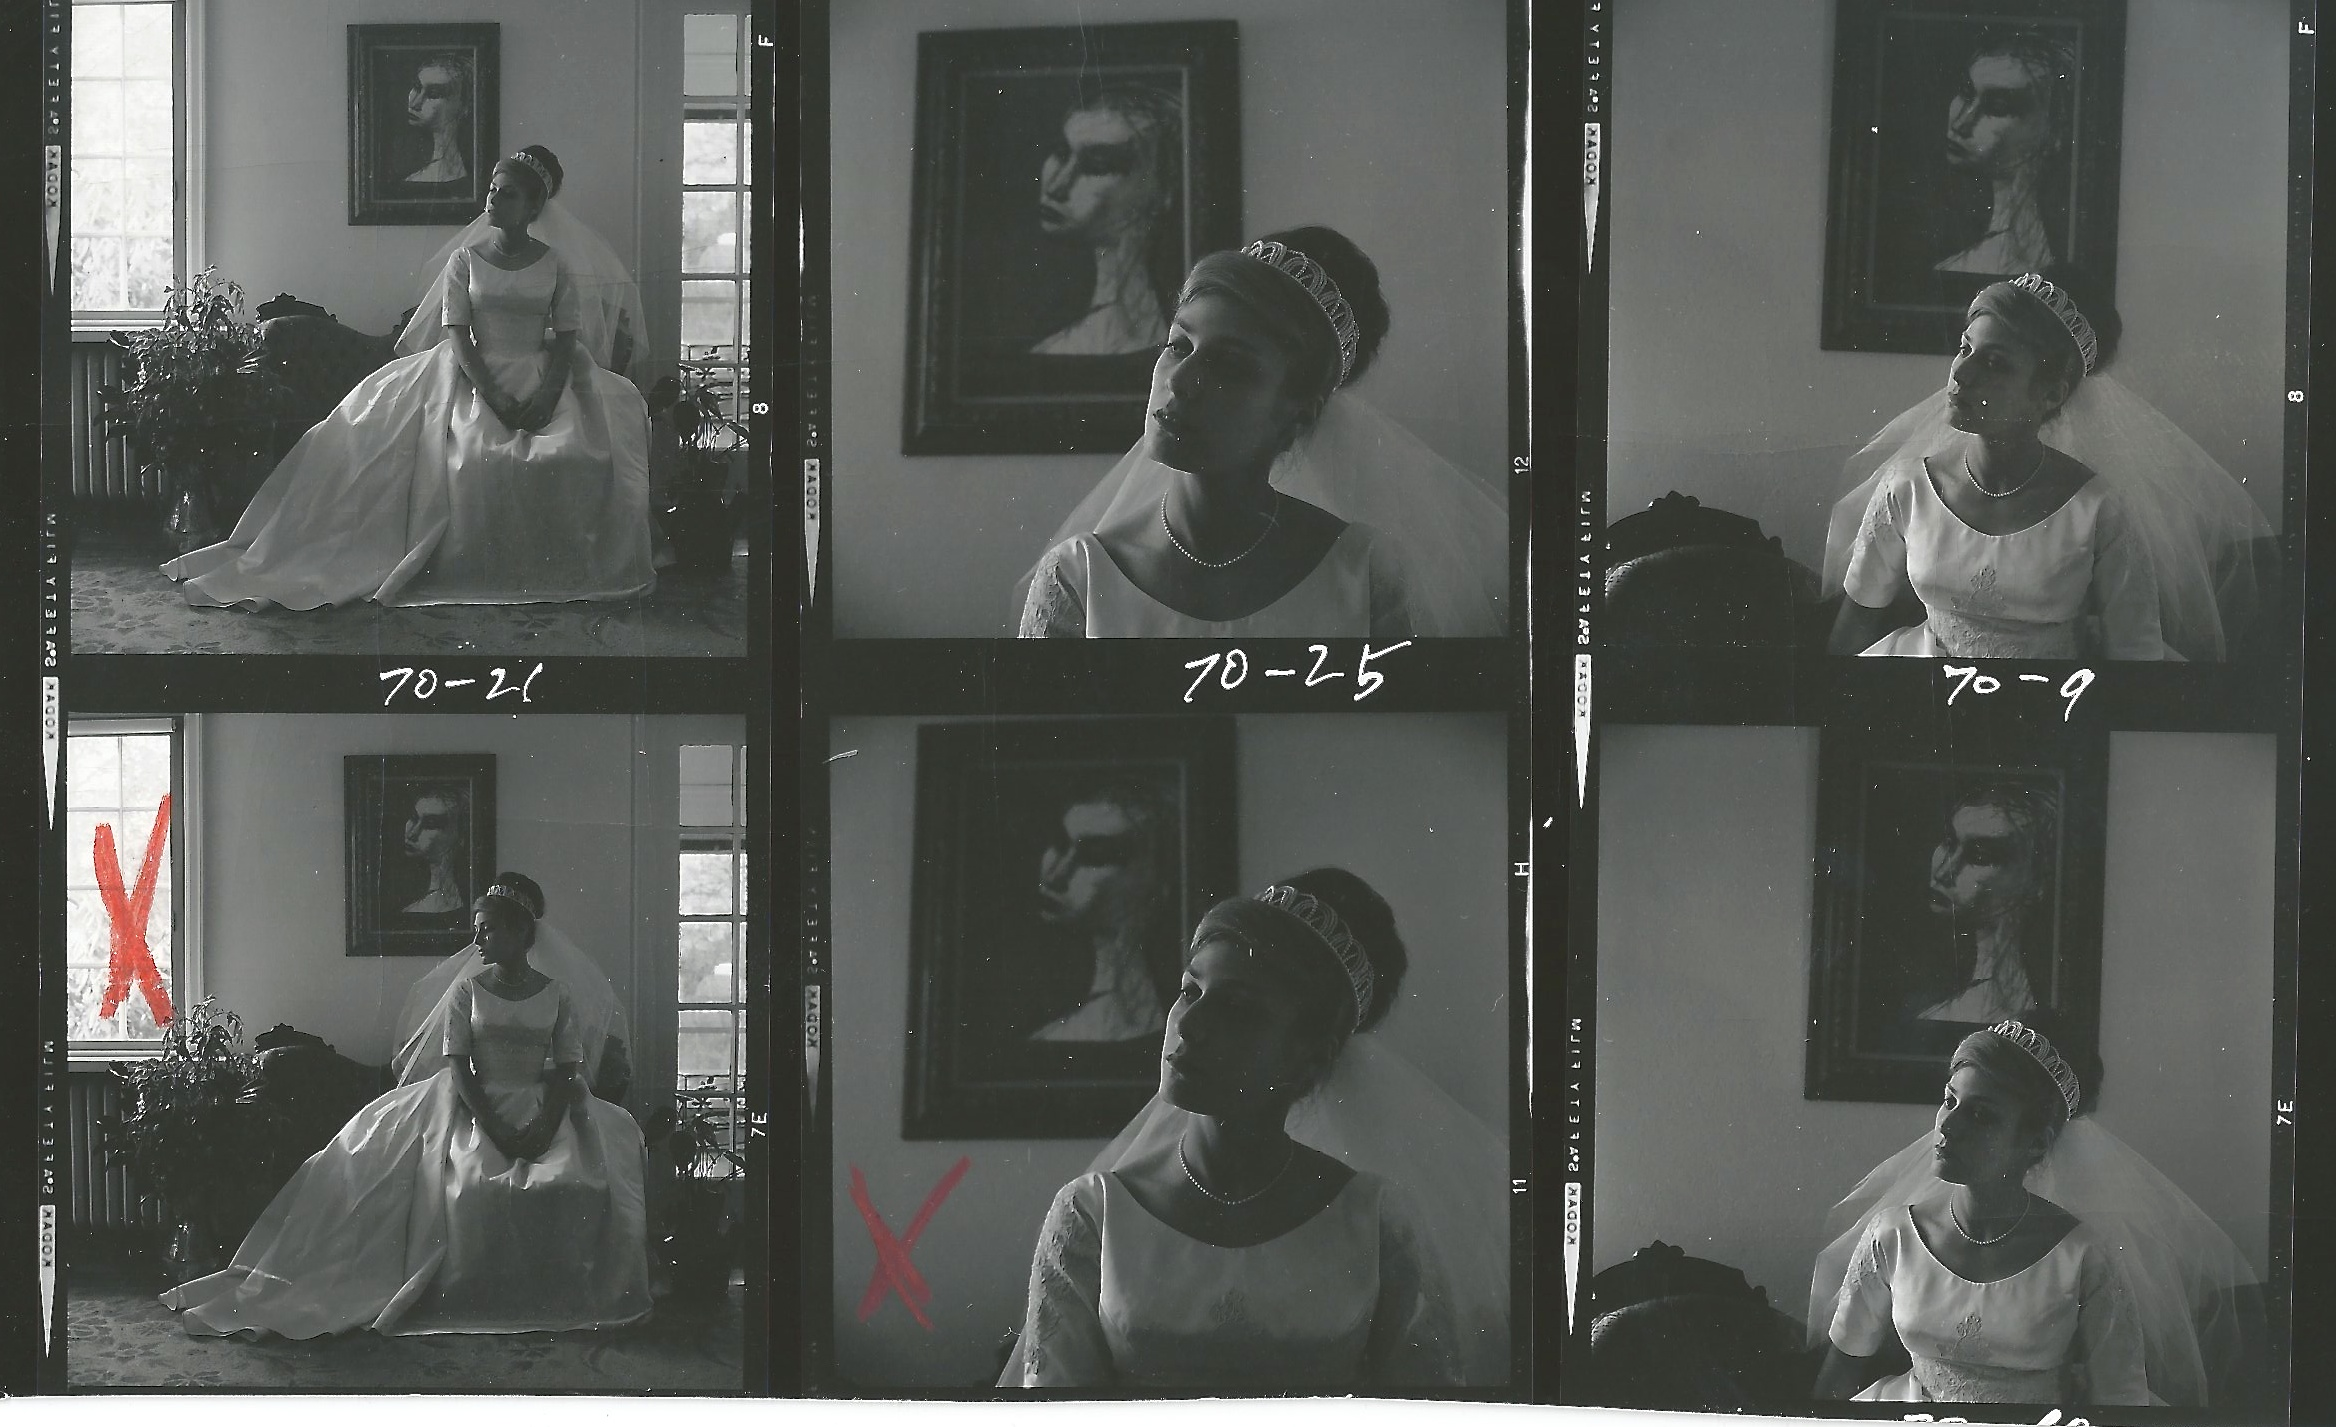 Contact Sheet 1968, scanned 2013